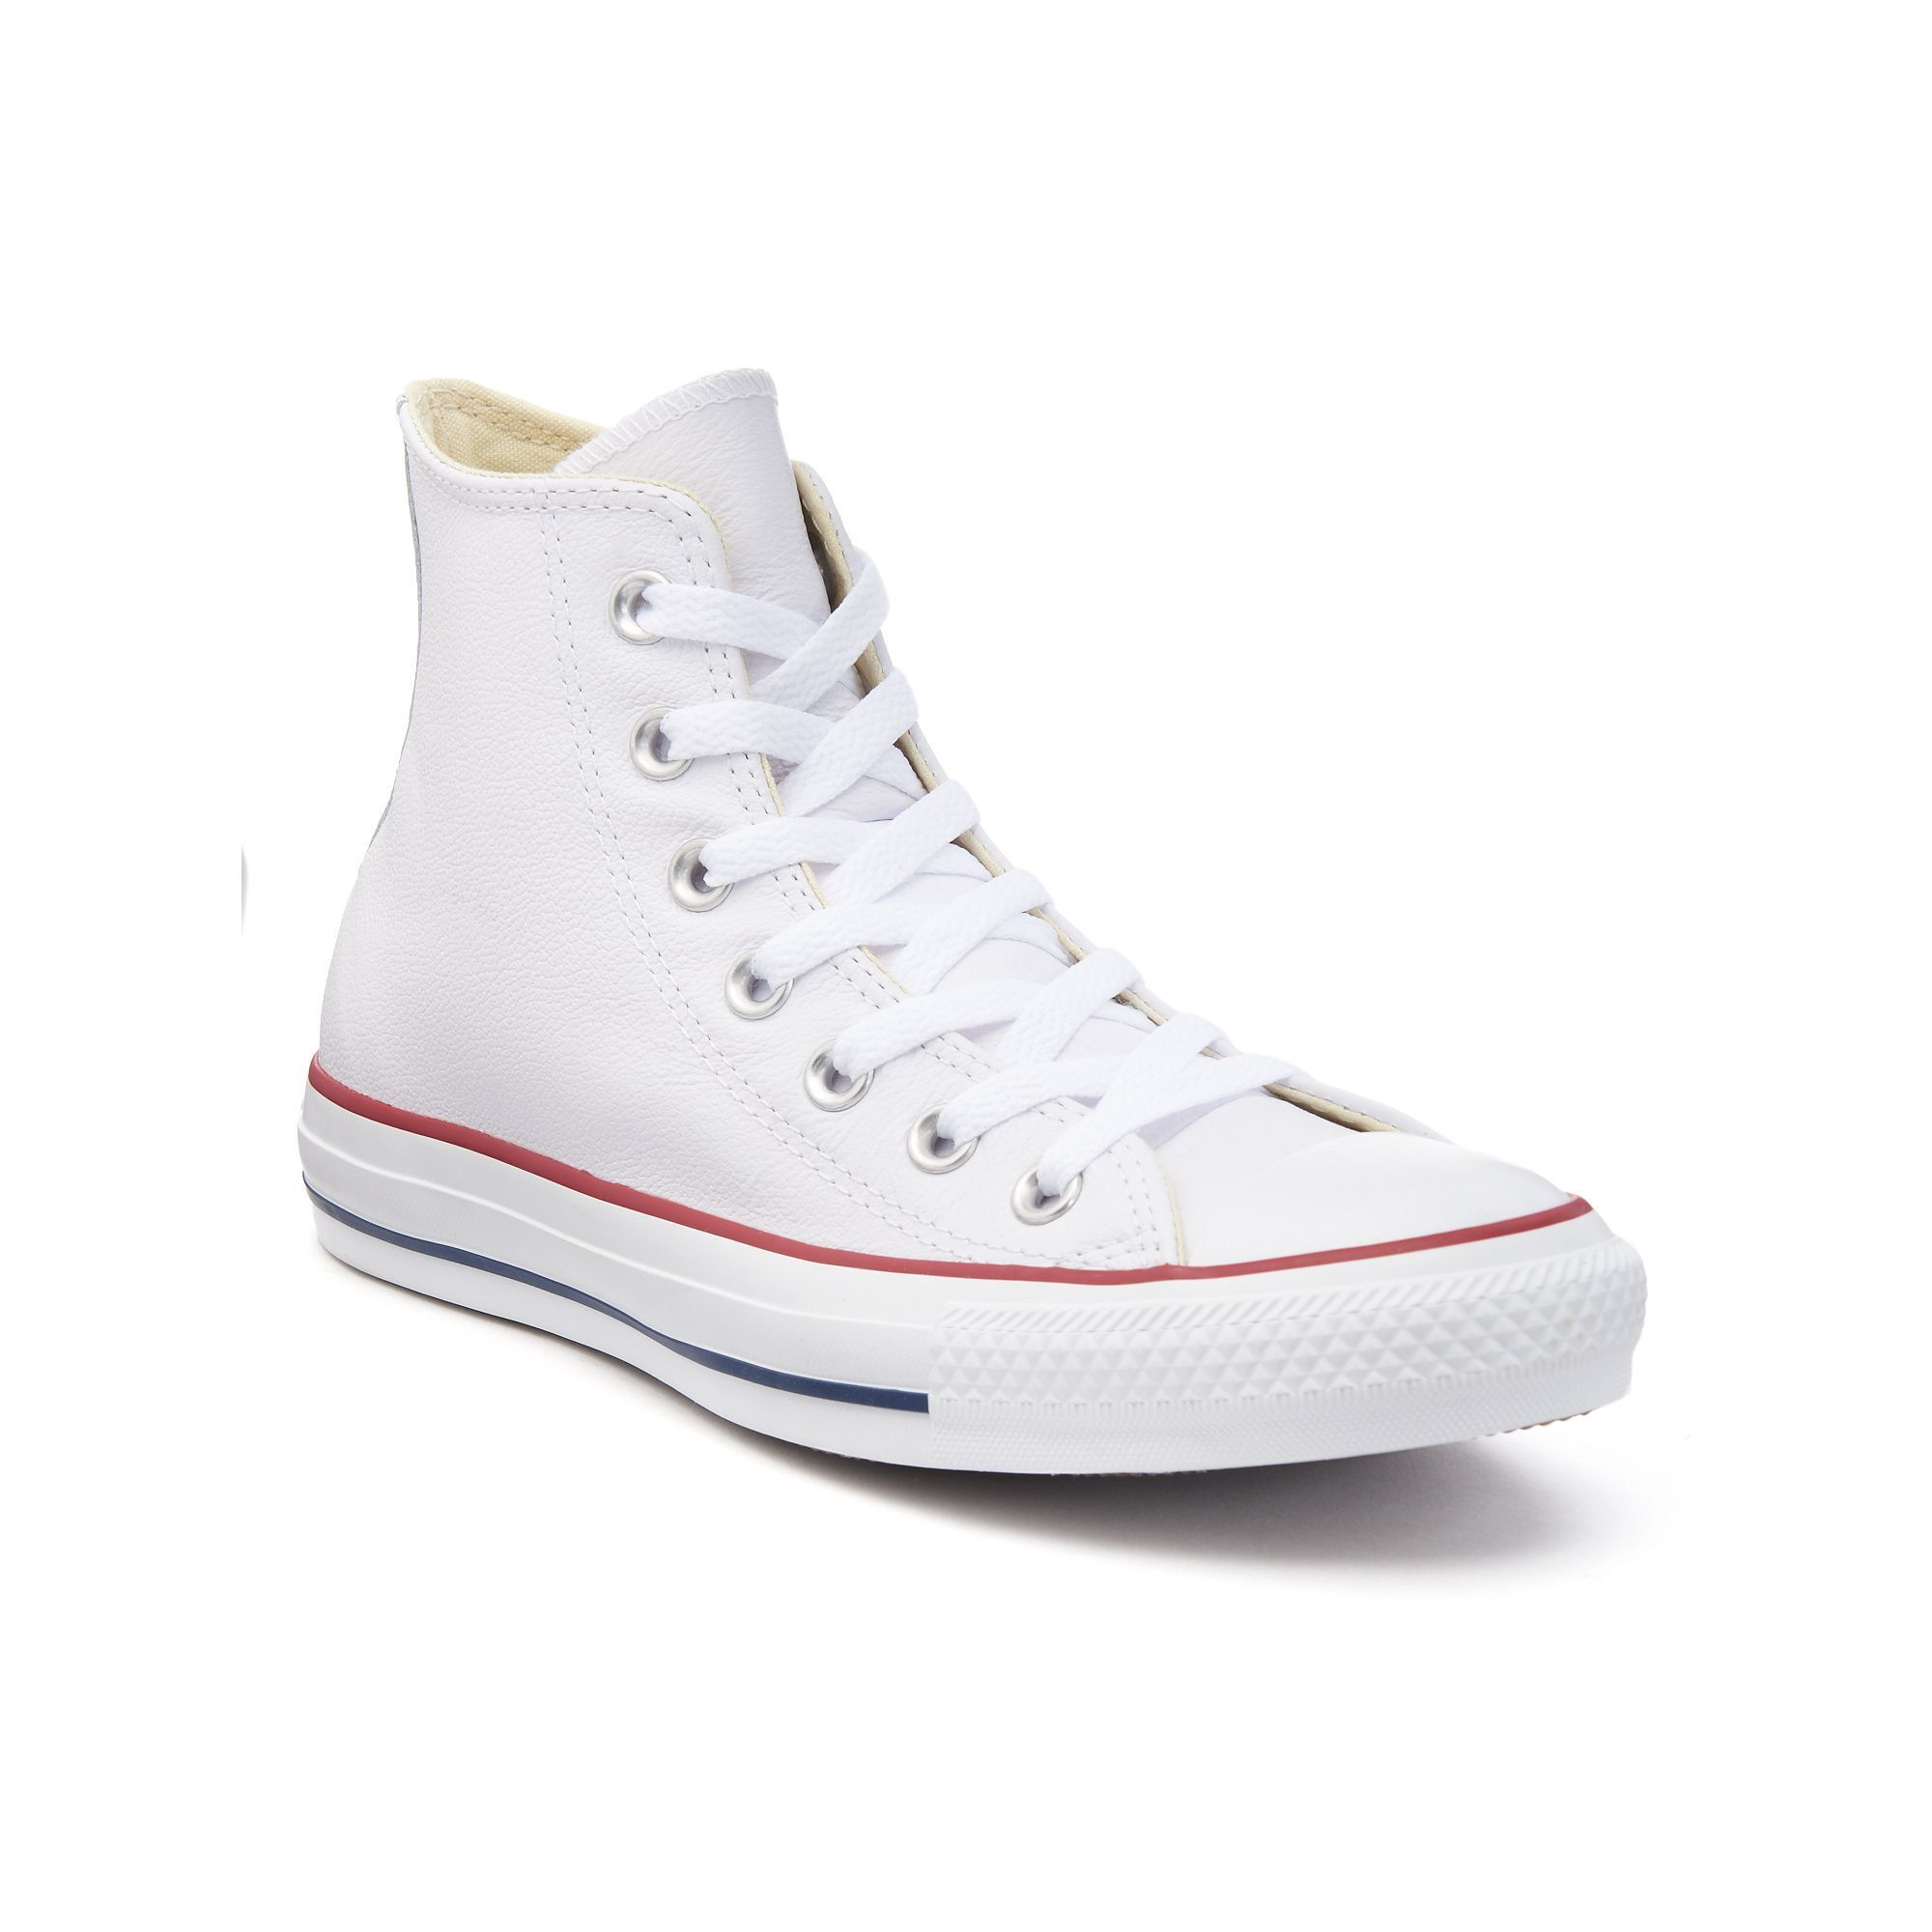 Adult Converse Chuck Taylor All Star Leather High-Top Sneakers #whiteallstars